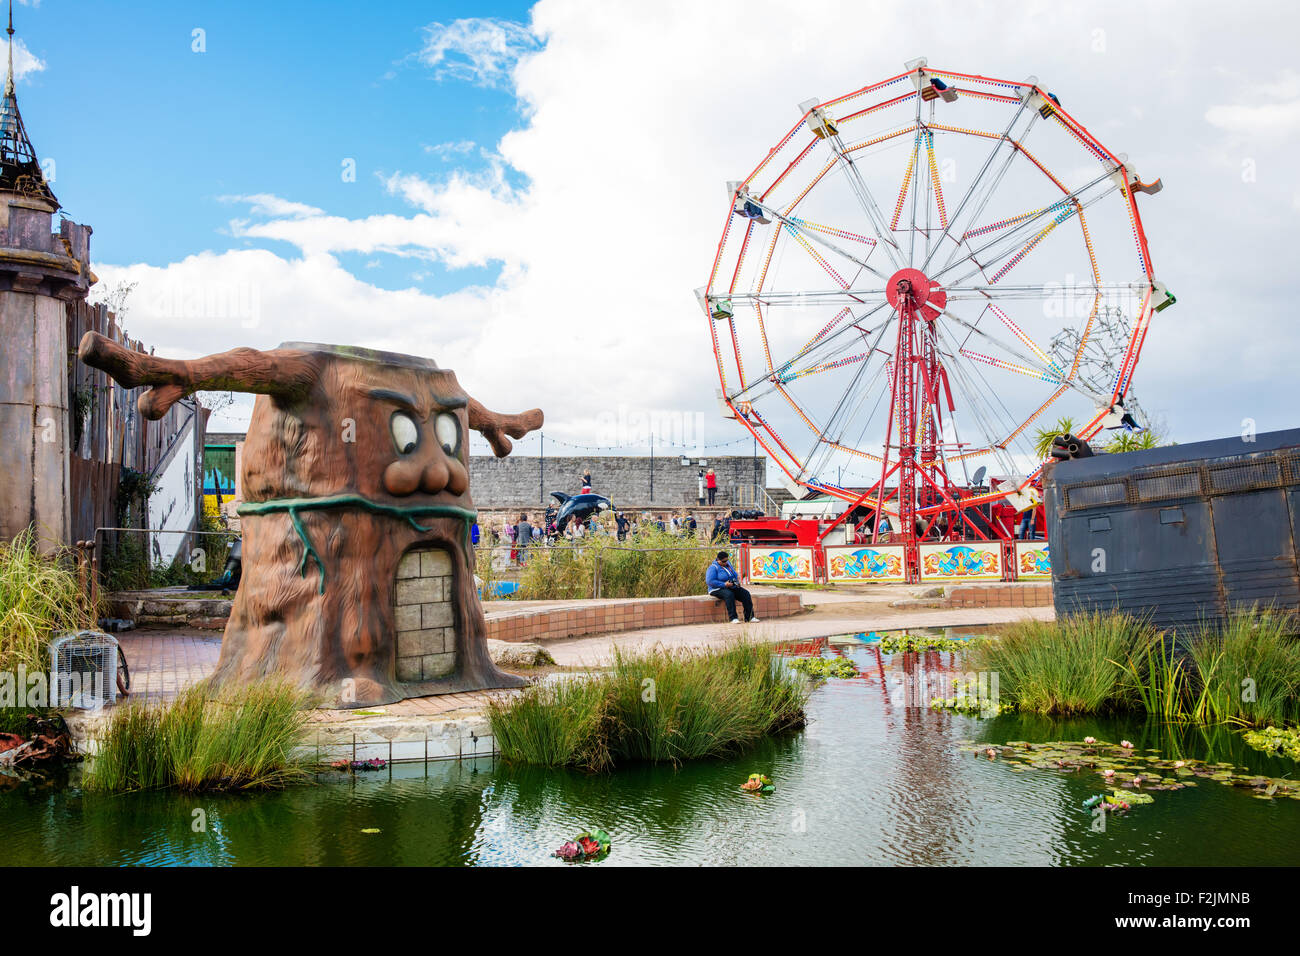 View across the lake at Banksy's Dismaland in Weston super Mare with bricked up Play tree and empty ferris wheel - Stock Image